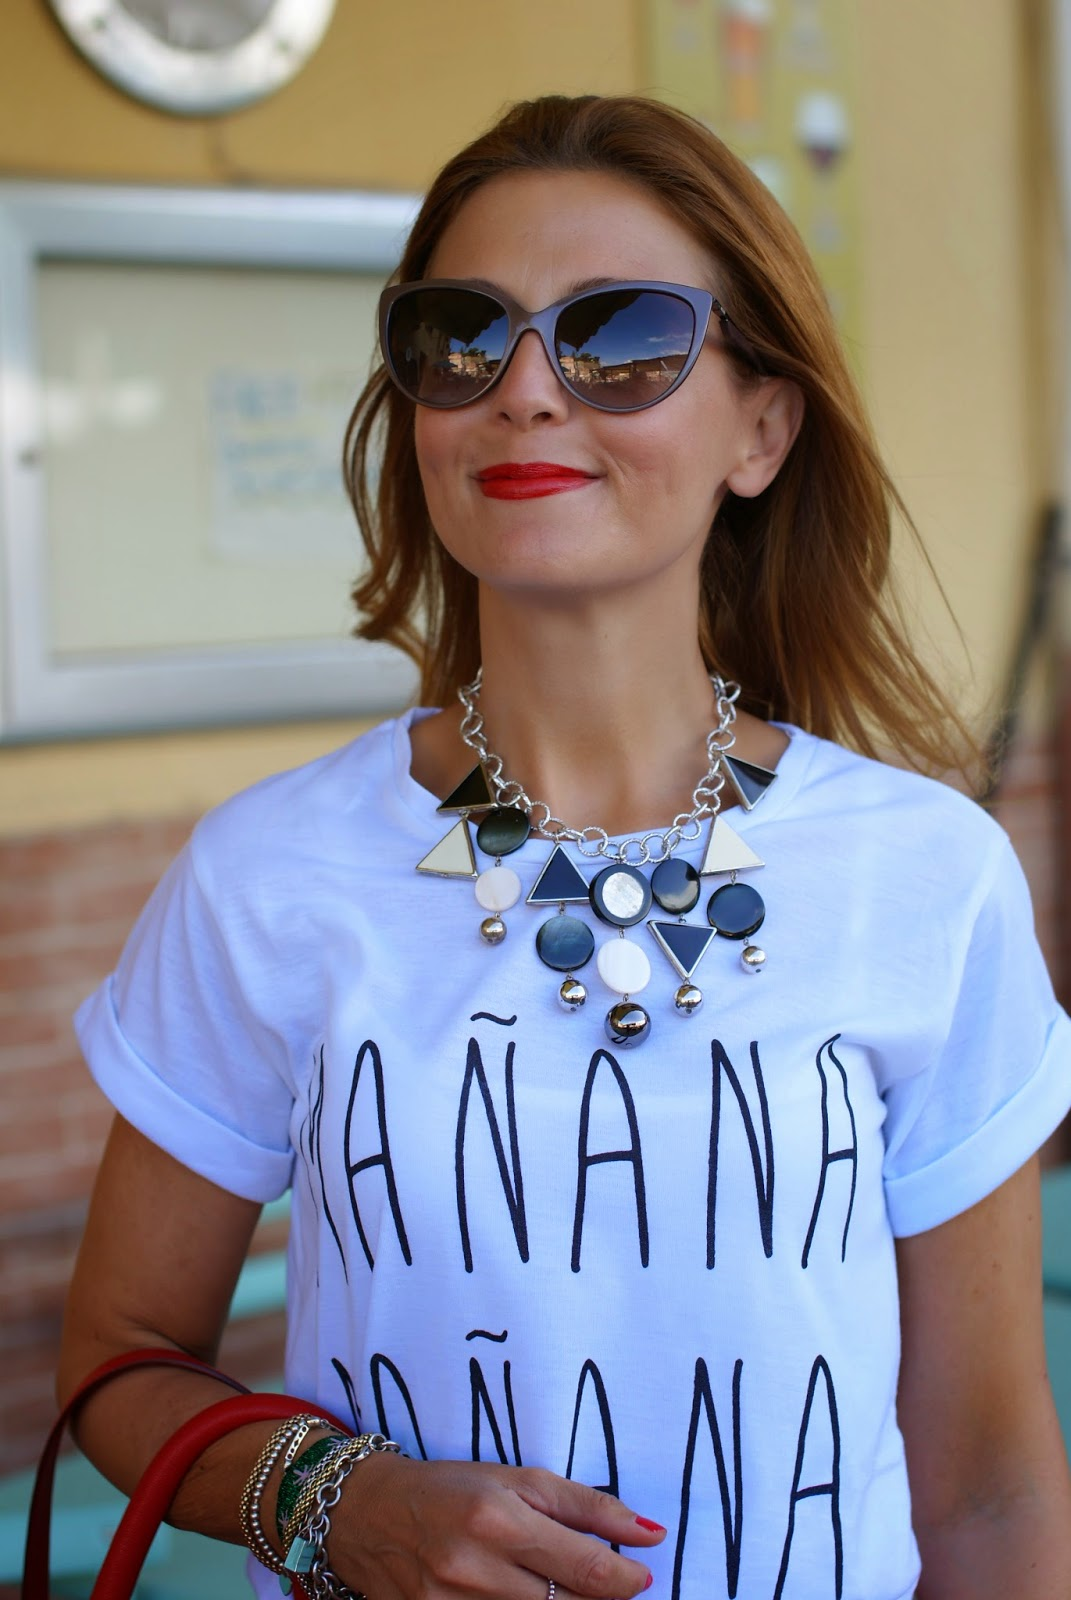 Vitti Ferria Contin necklace, manana t-shirt, Givenchy Pandora in red, Fashion and Cookies, fashion blogger